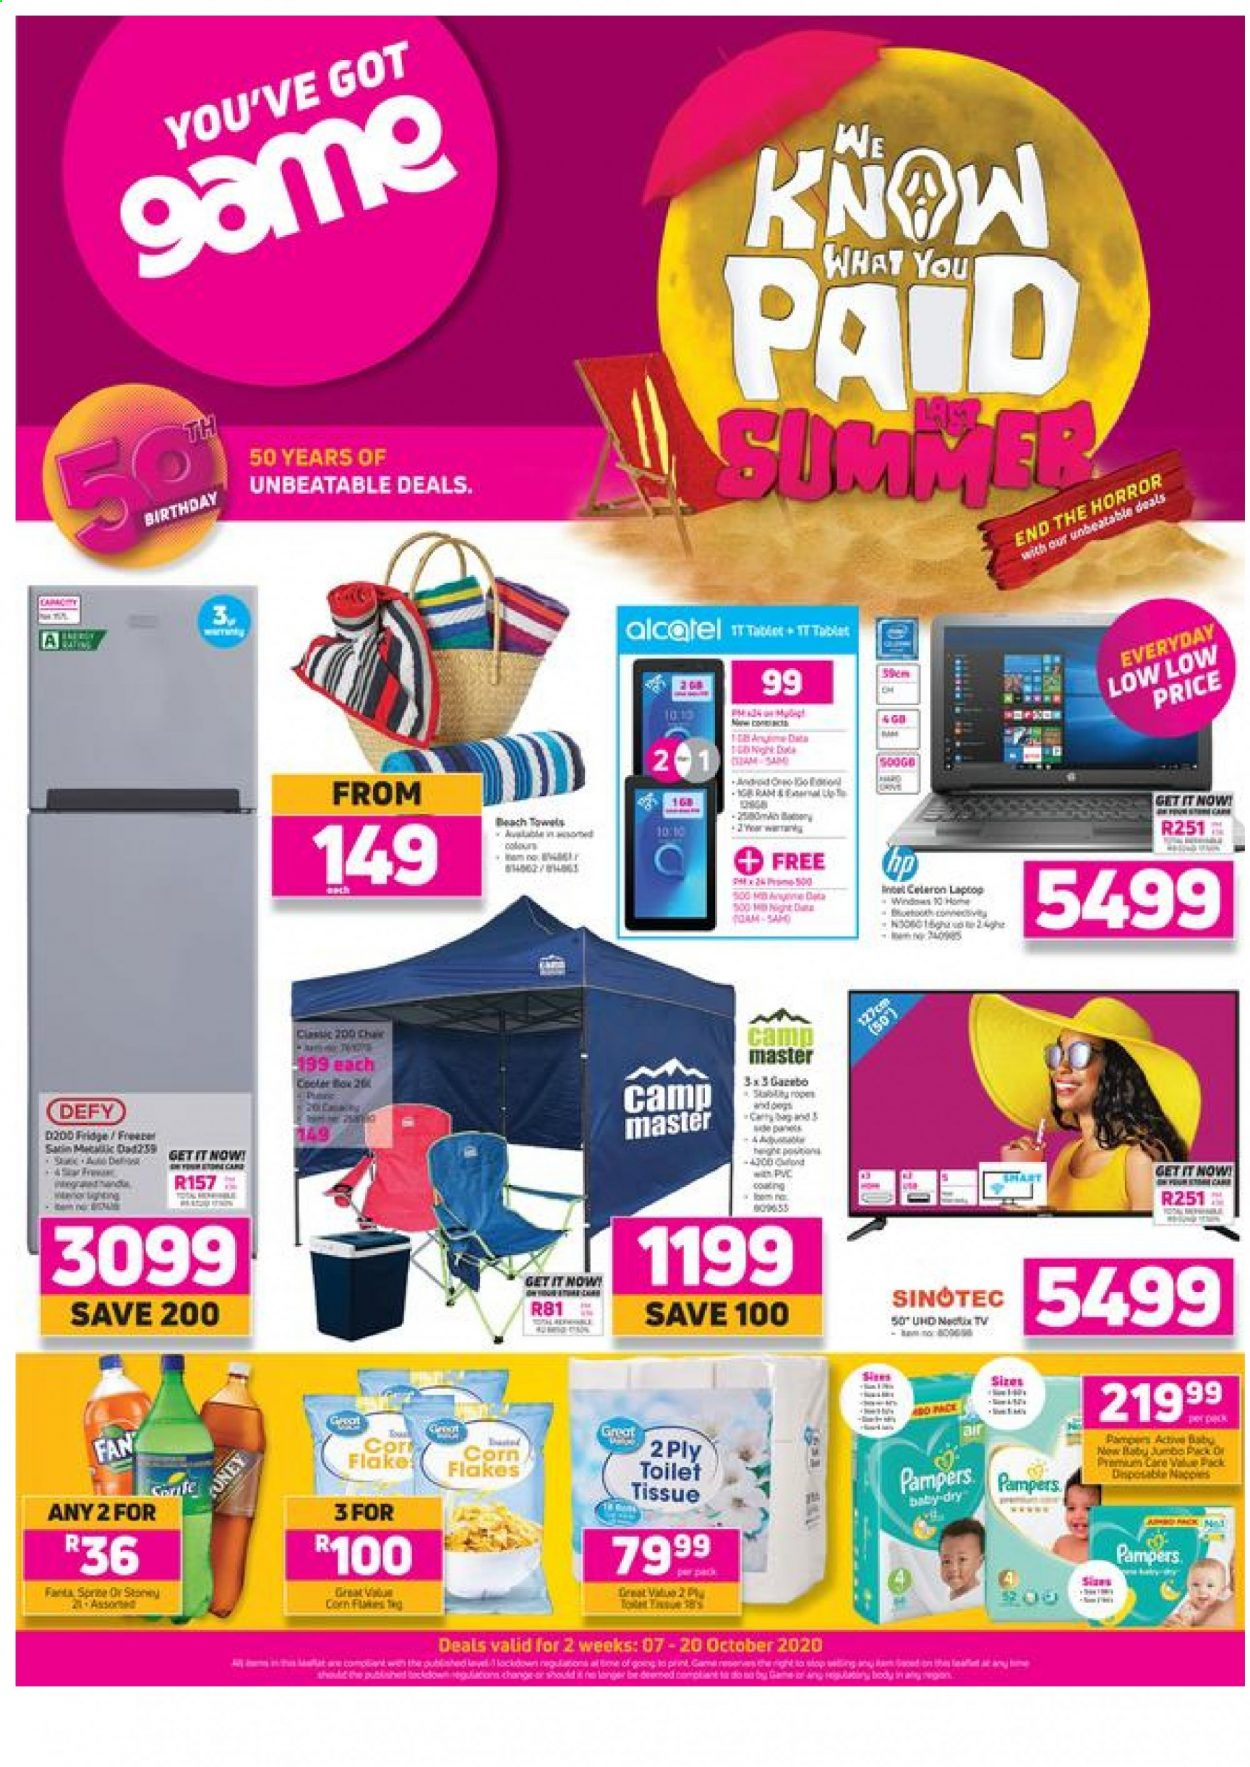 Game catalogue  - 10.07.2020 - 10.20.2020 - Sales products - corn, gin, fridge, tablet, chair, pampers, cooler, corn flakes, car, fan, flakes, toilet tissue, refrigerator. Page 1.